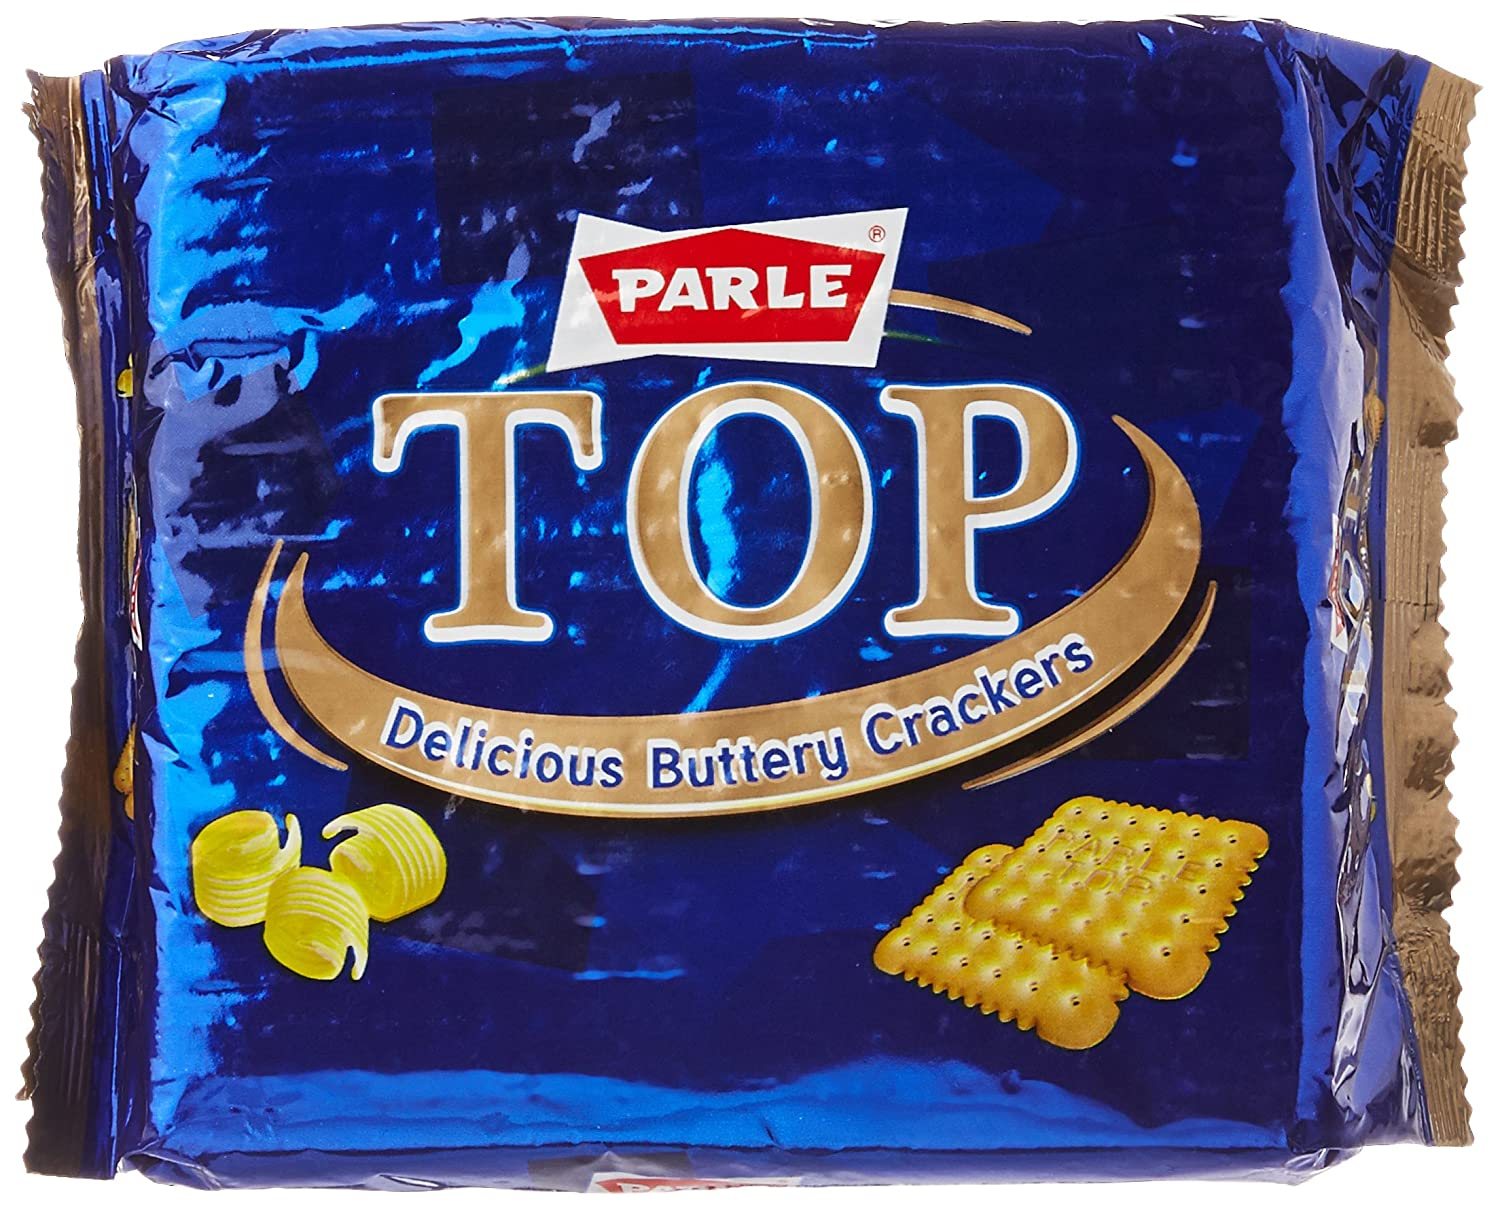 Parle Top Biscuit